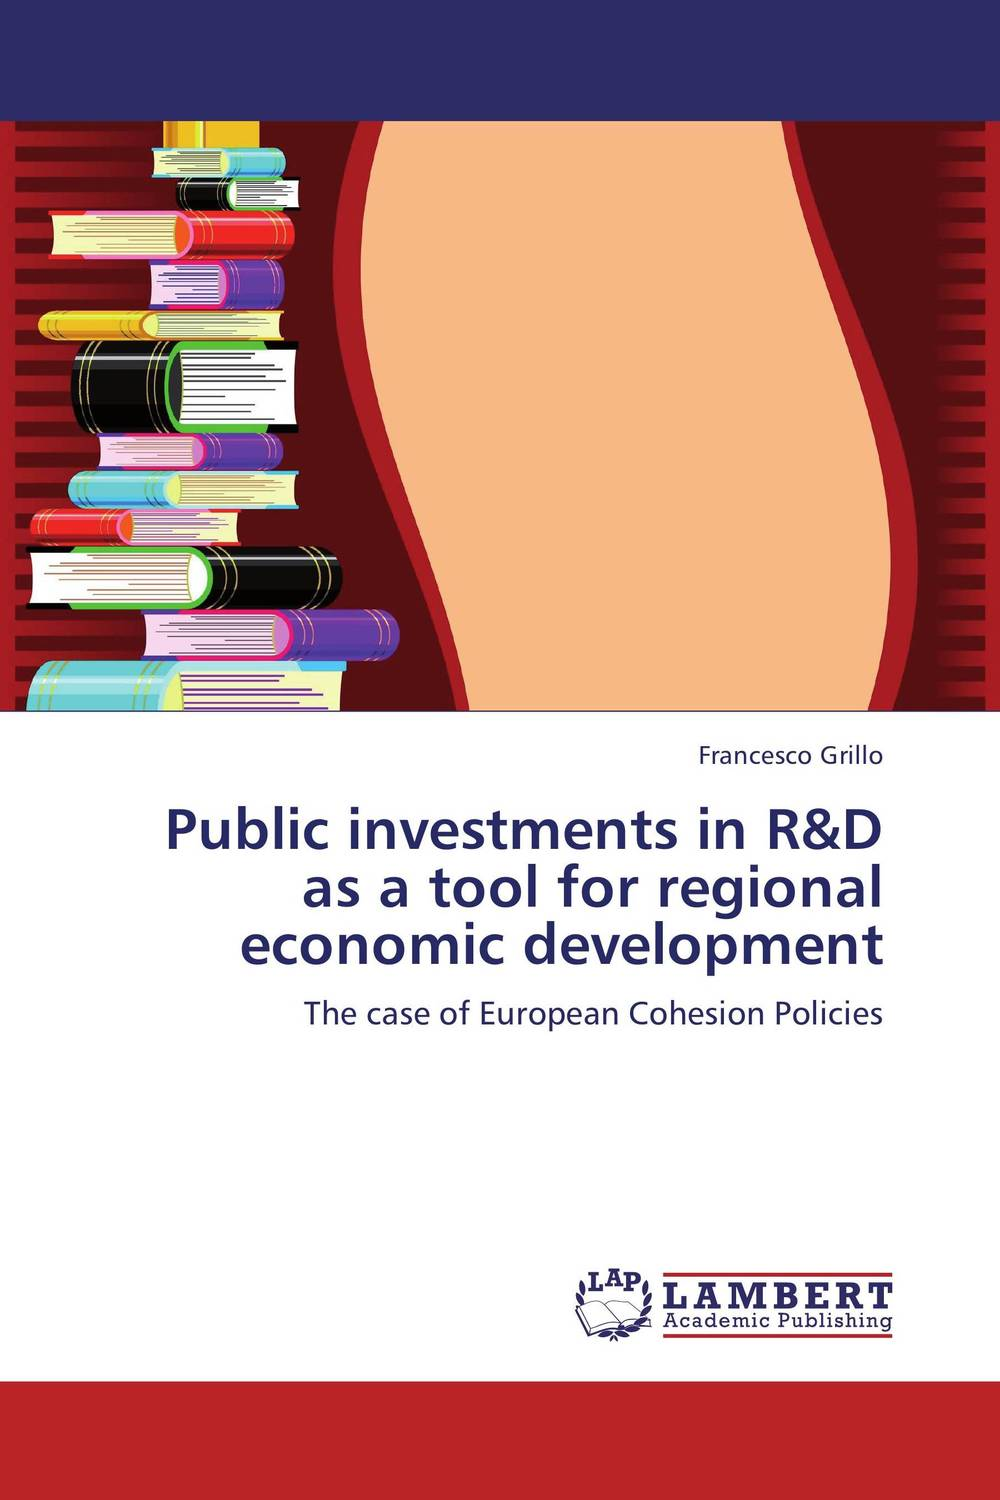 Фото Public investments in R&D as a tool for regional economic development finance and investments